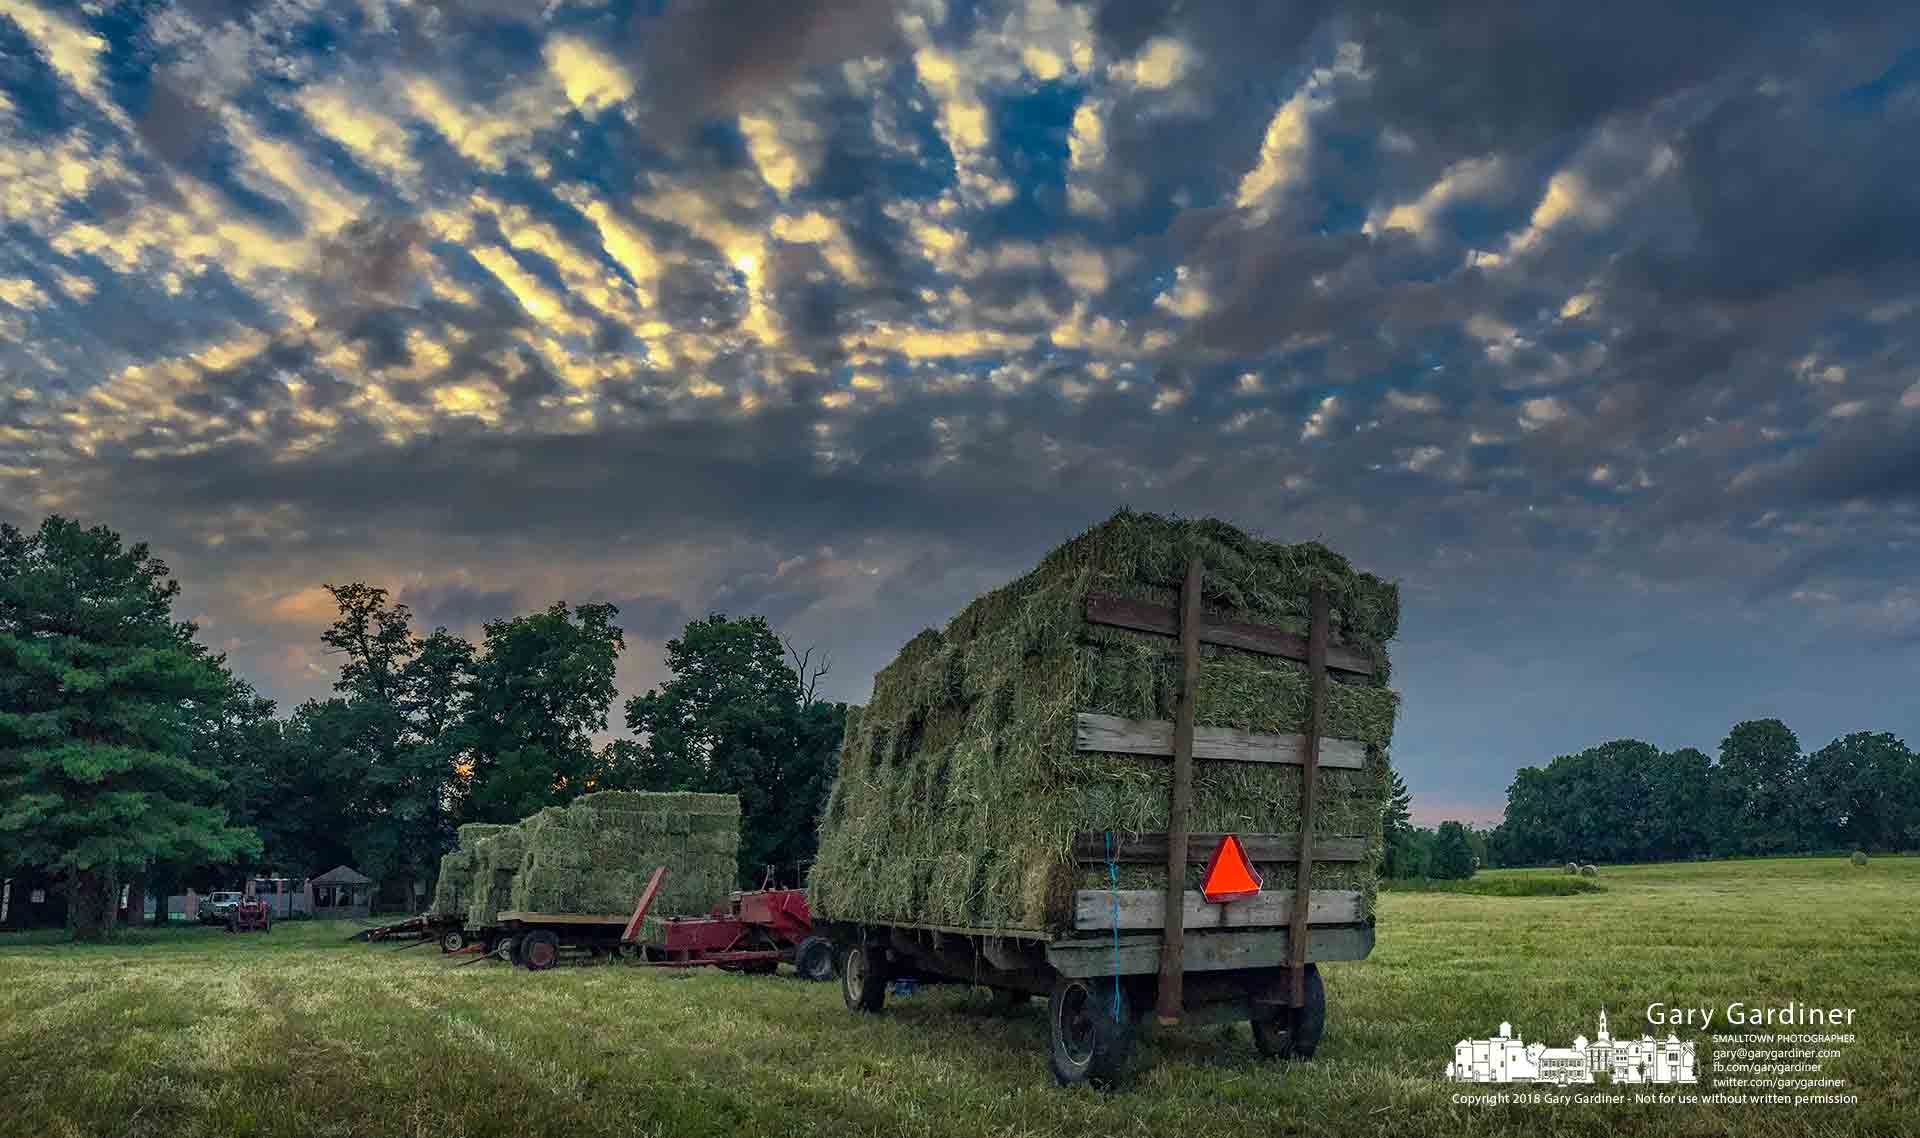 Trailers loaded with hay wait for transport to the barn after being harvested along Africa Road in Westerville before the arrival of Rain Saturday. My Final Photo for Aug. 24, 2018.